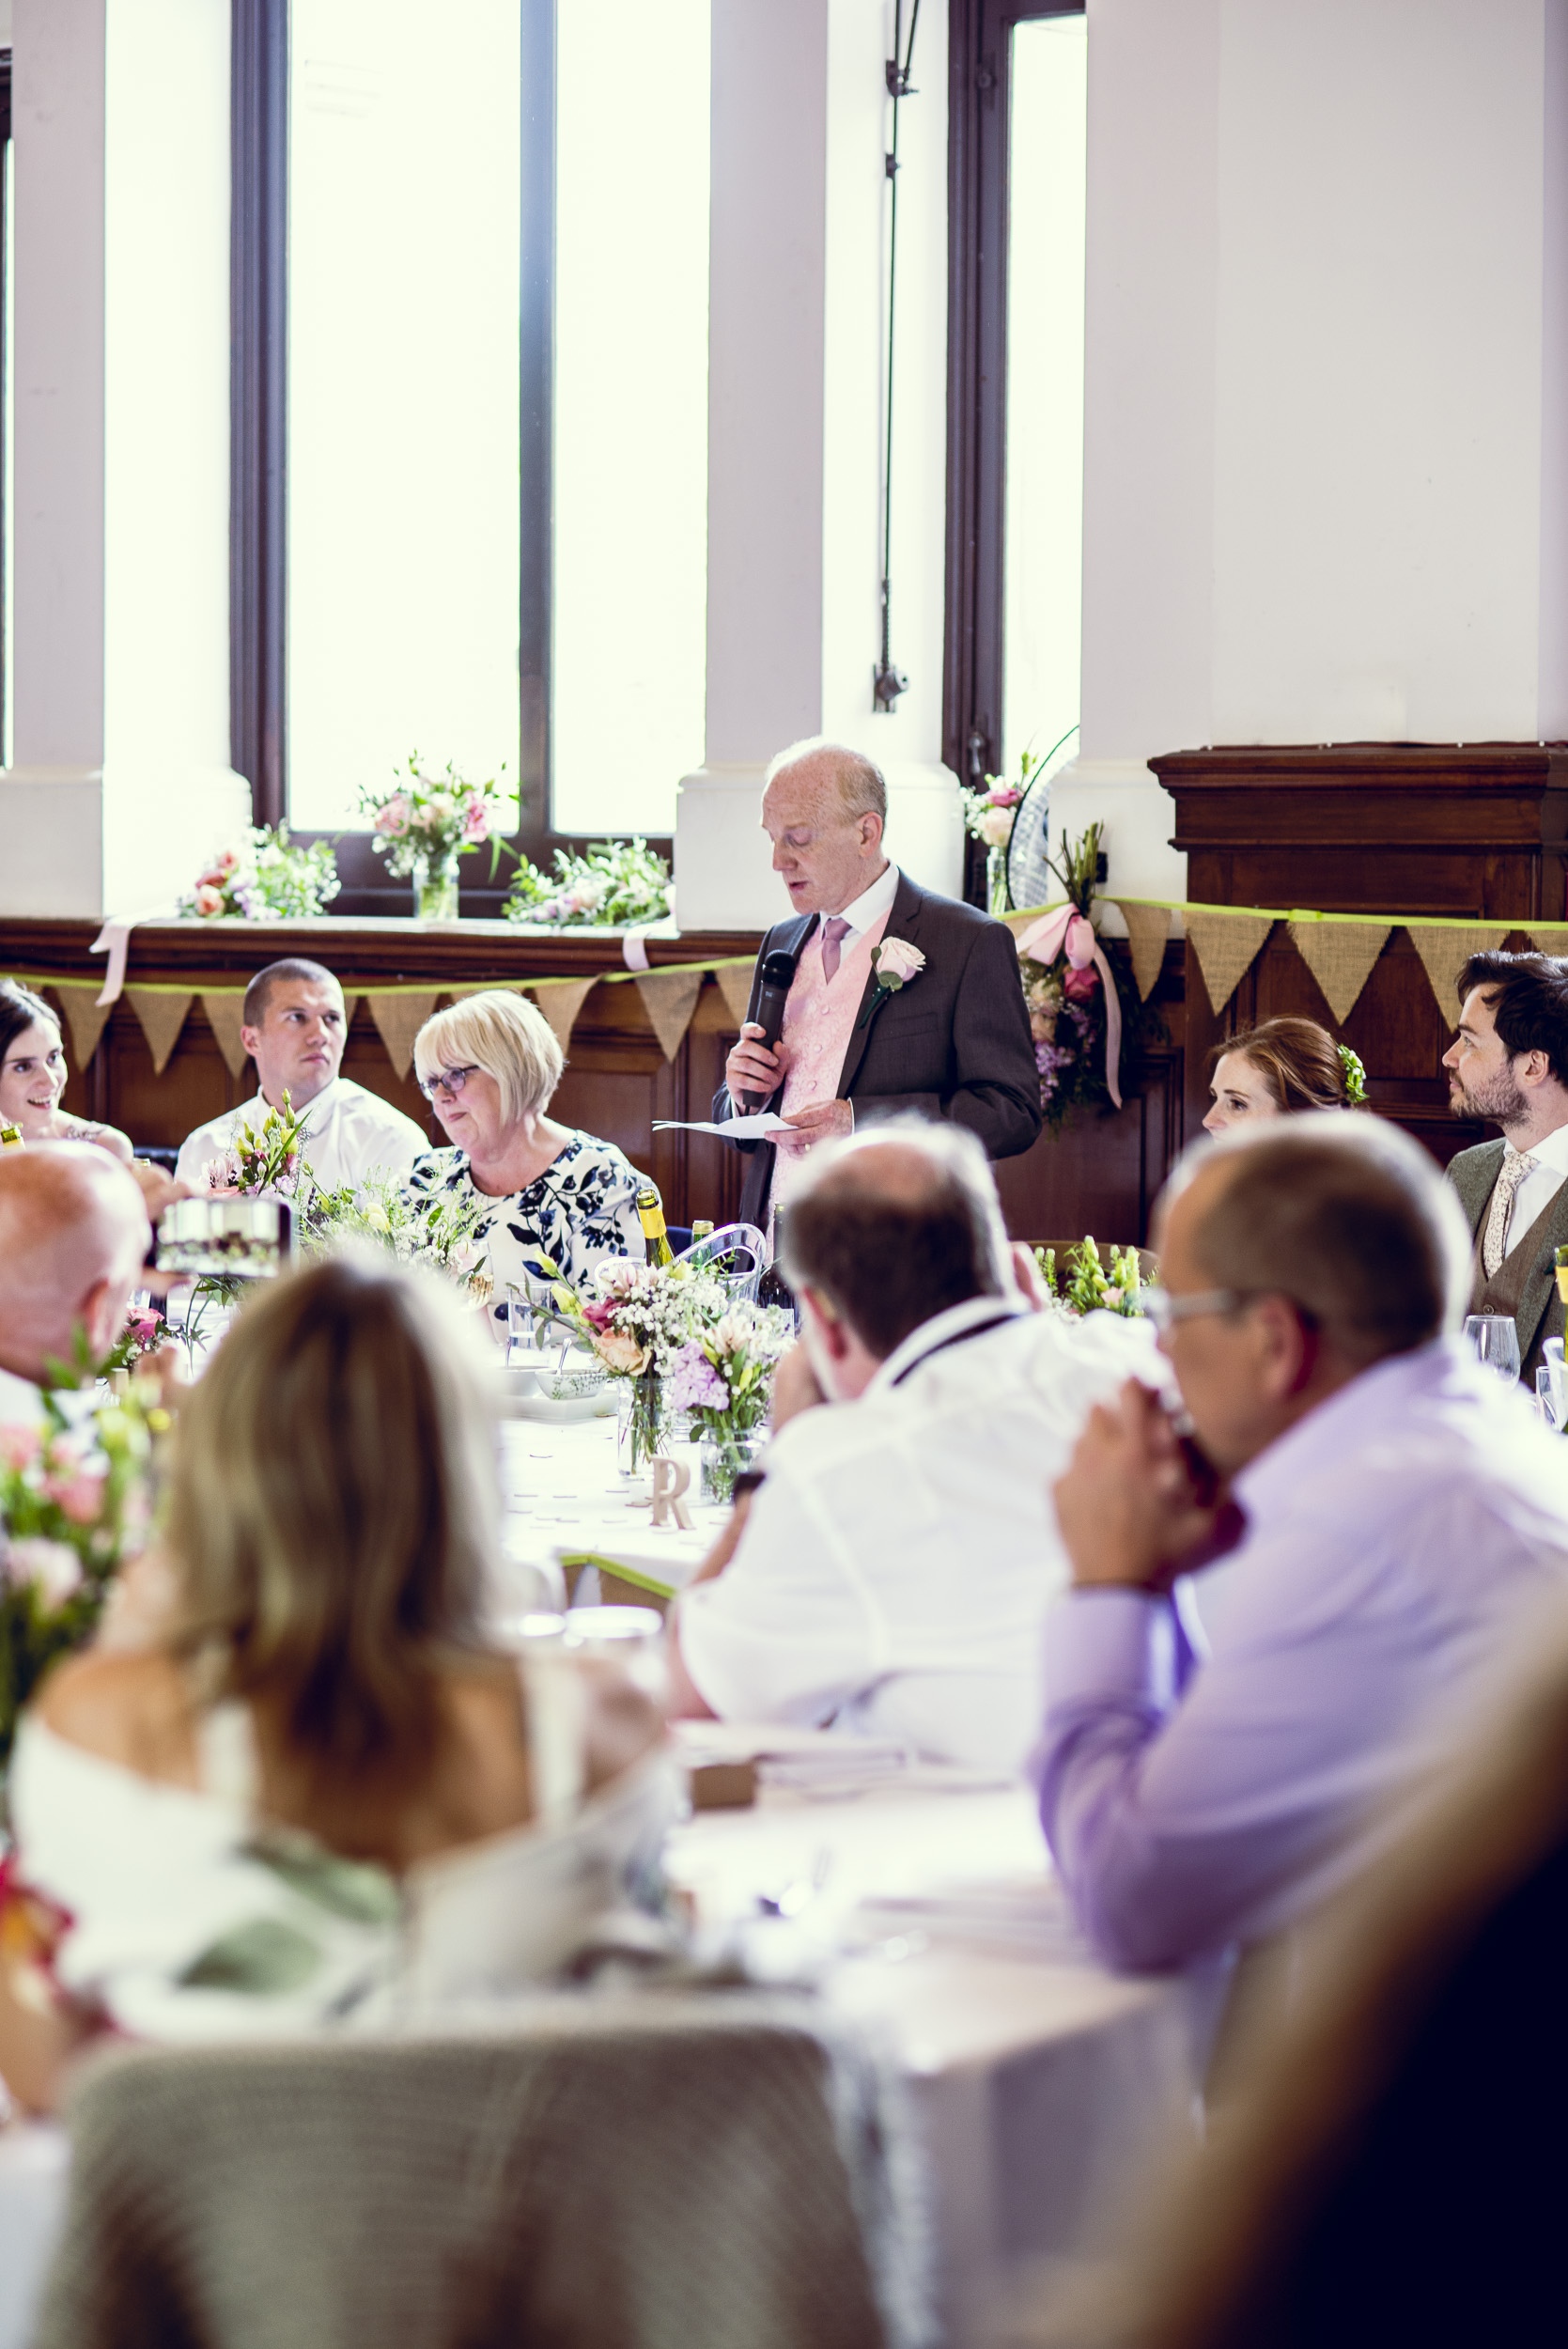 The Father of the Bride & the Groom made their speeches. -